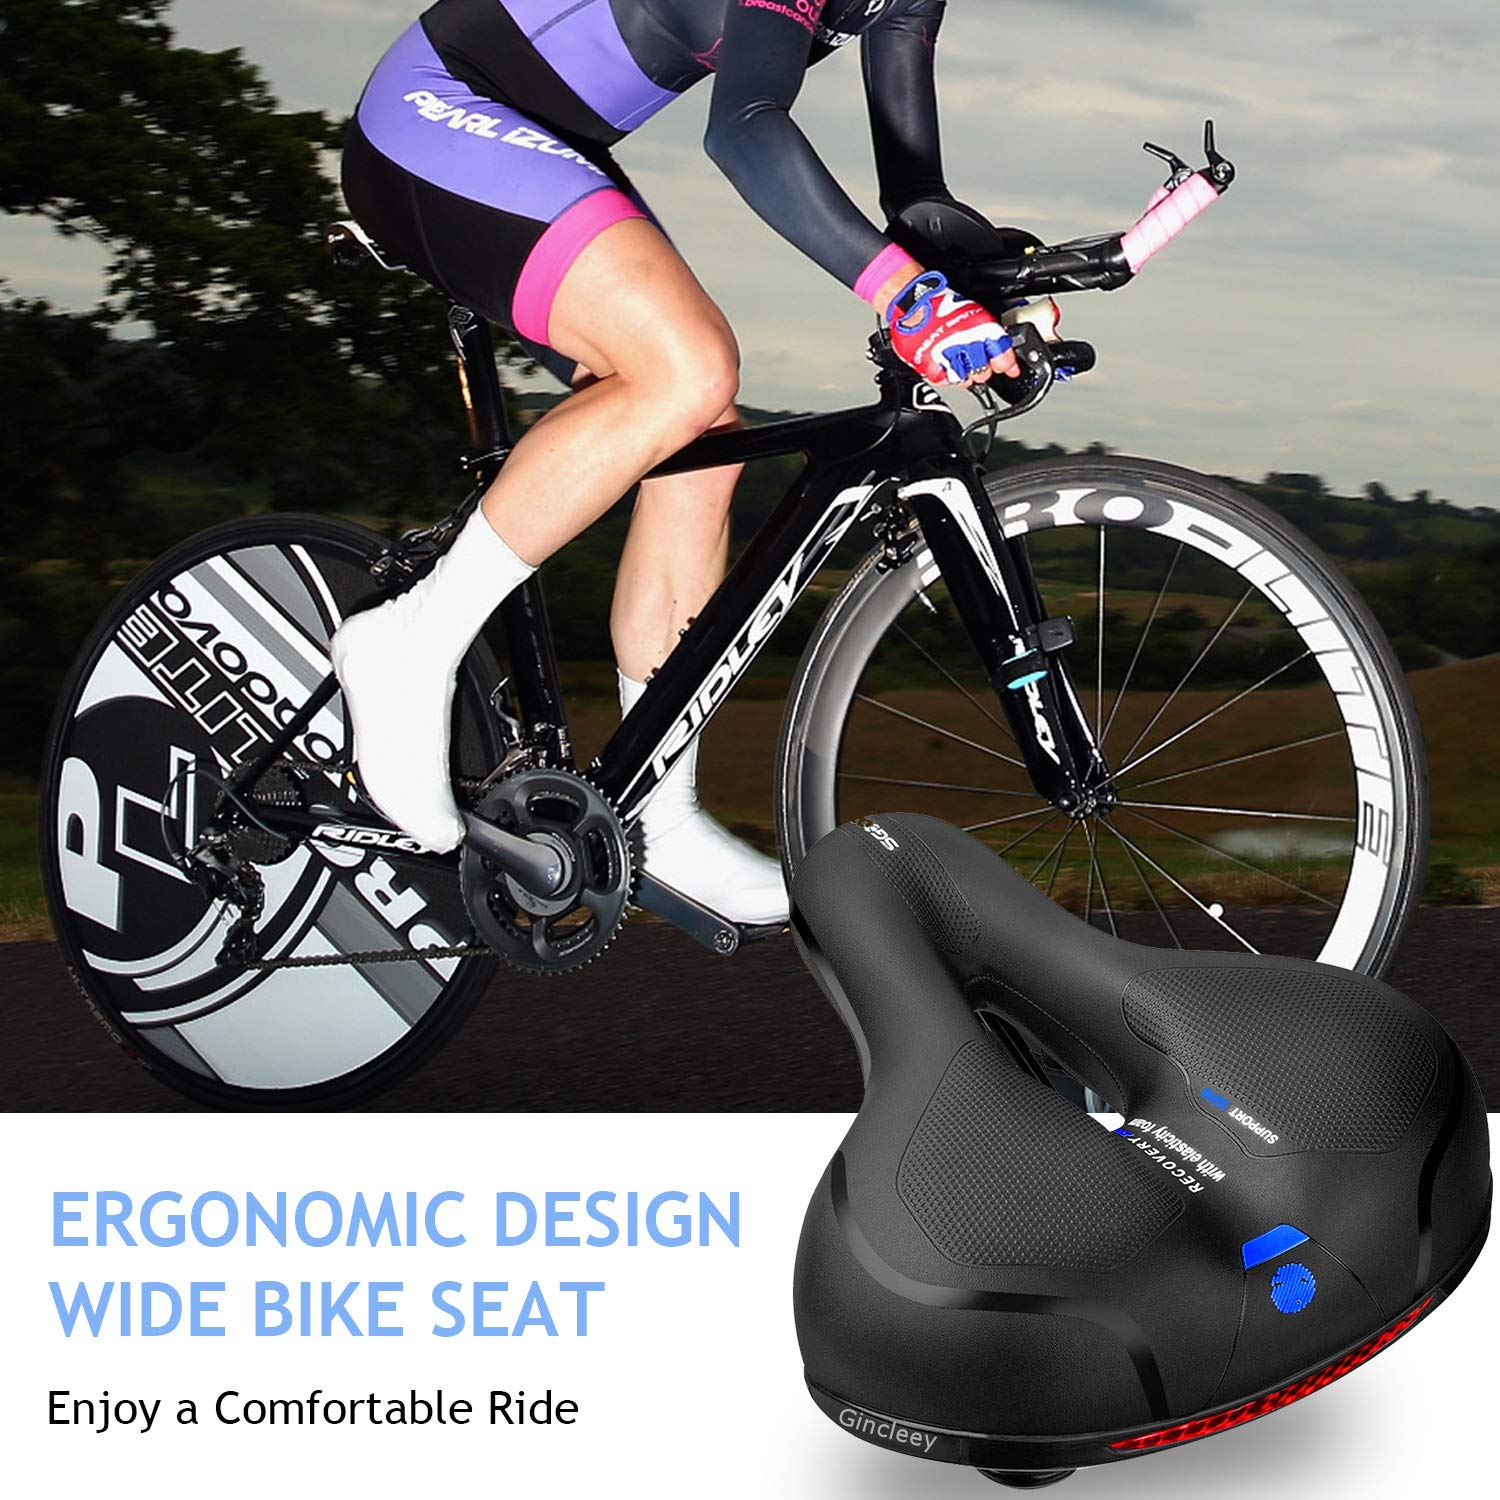 Gincleey Comfort Bike Seat for Women Men,Wide Bicycle Saddle Replacement Memory Foam Padded Soft Bike Cushion with Dual Shock Absorbing Rubber Balls Universal Fit for Indoor/Outdoor Bikes with Reflect